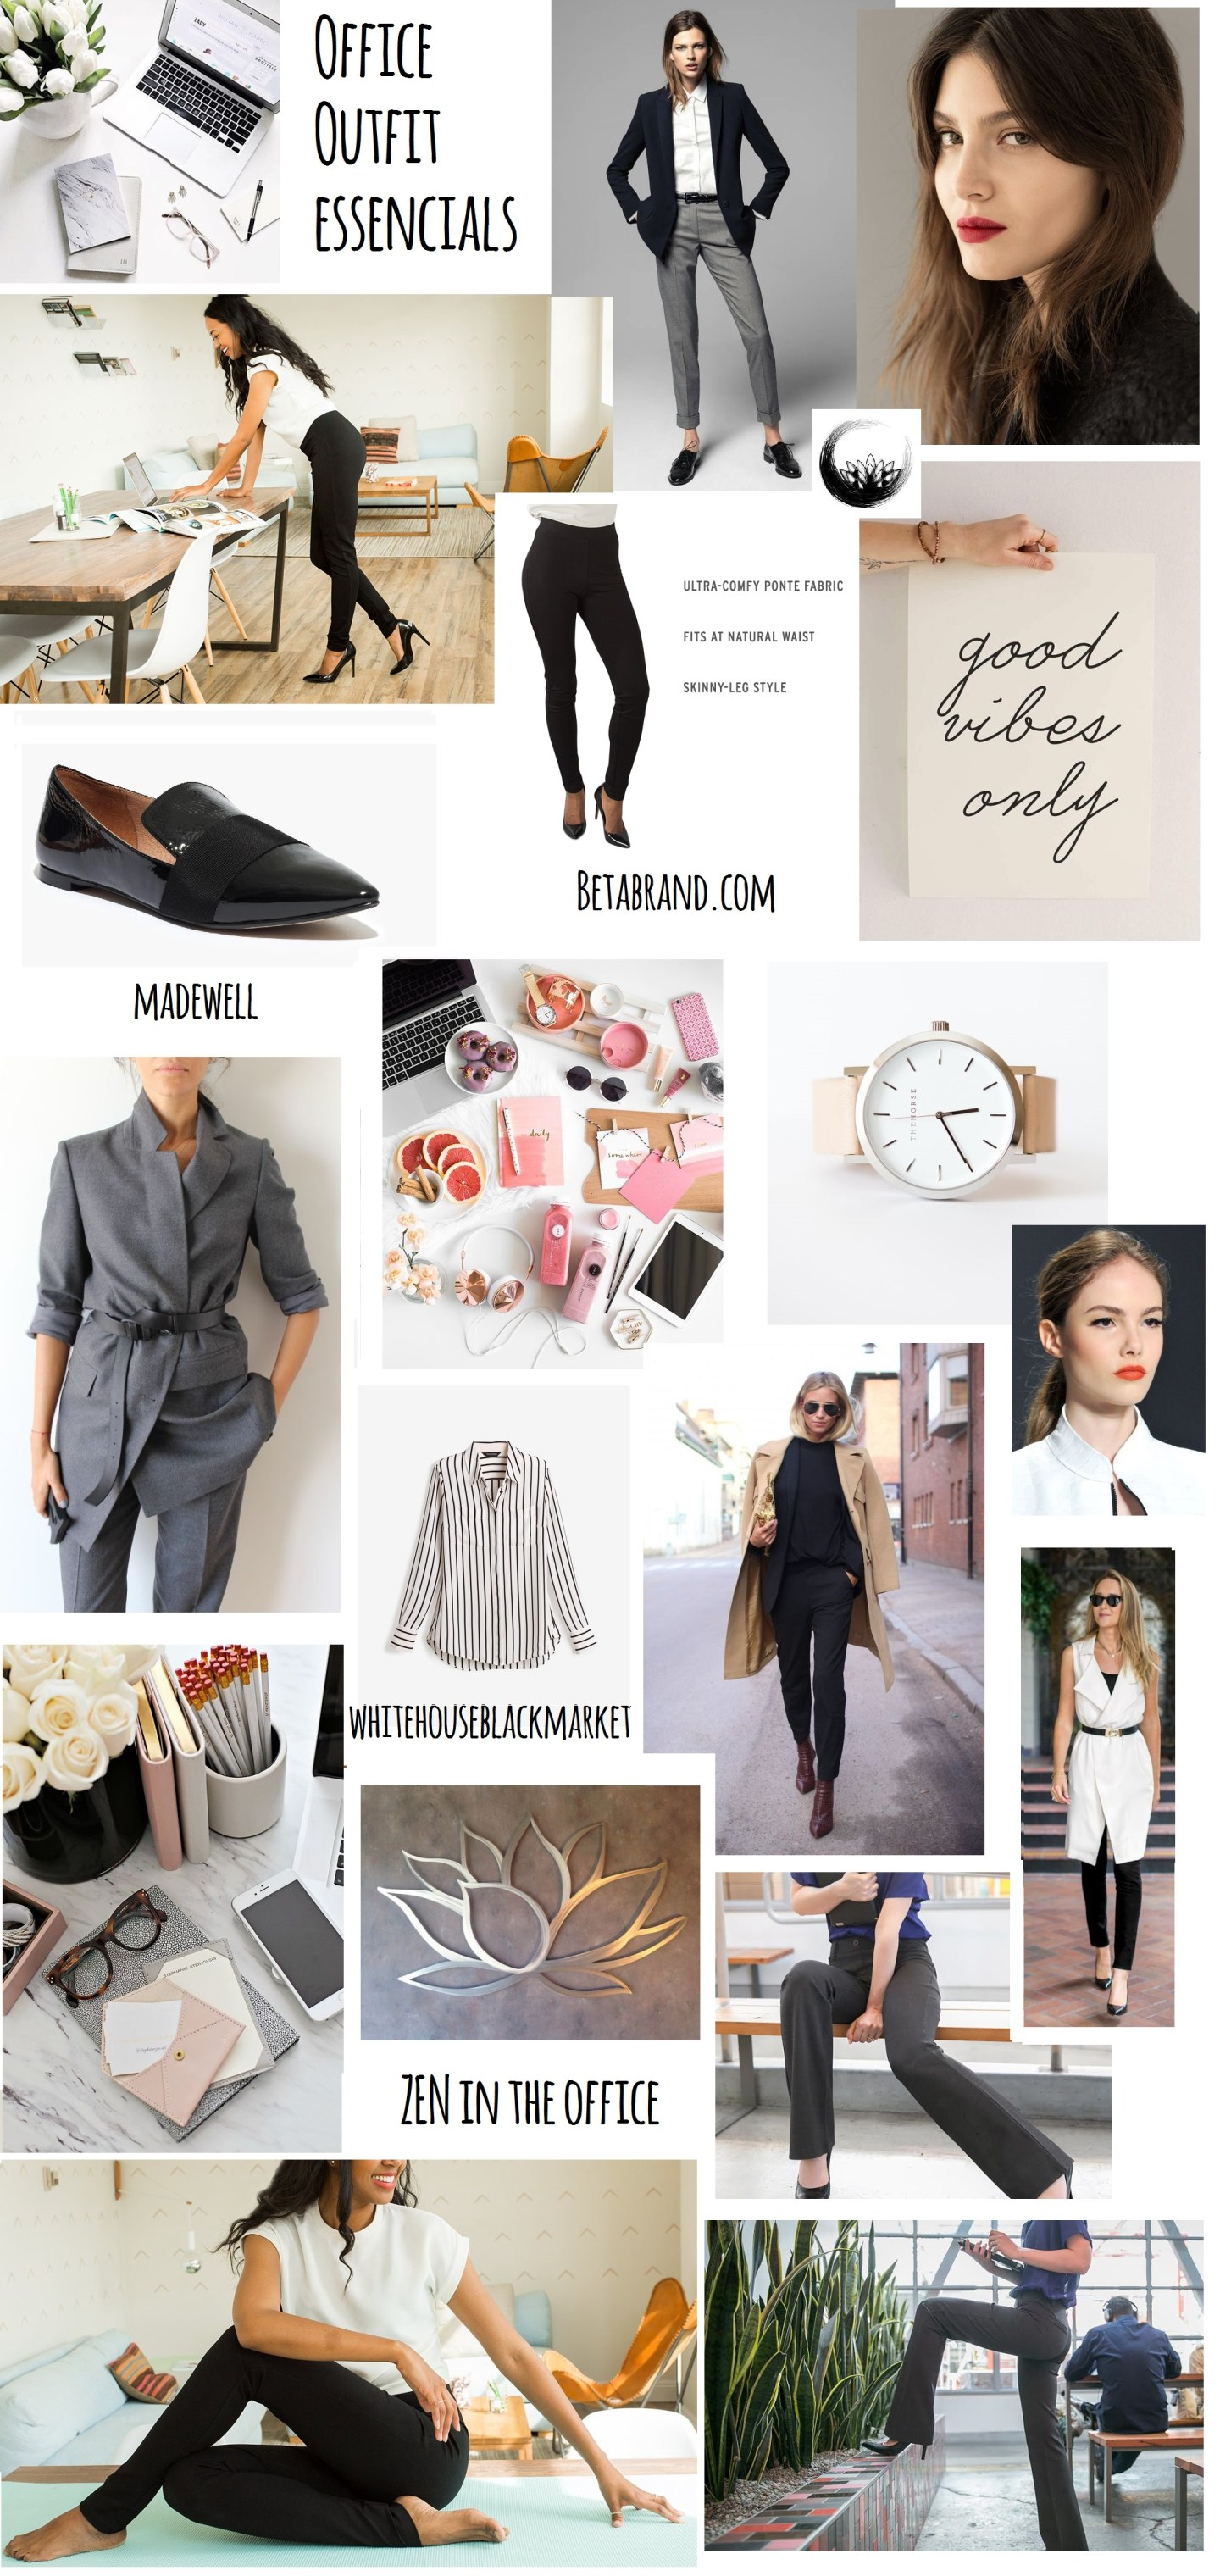 Trendy-office-outfit-essencials